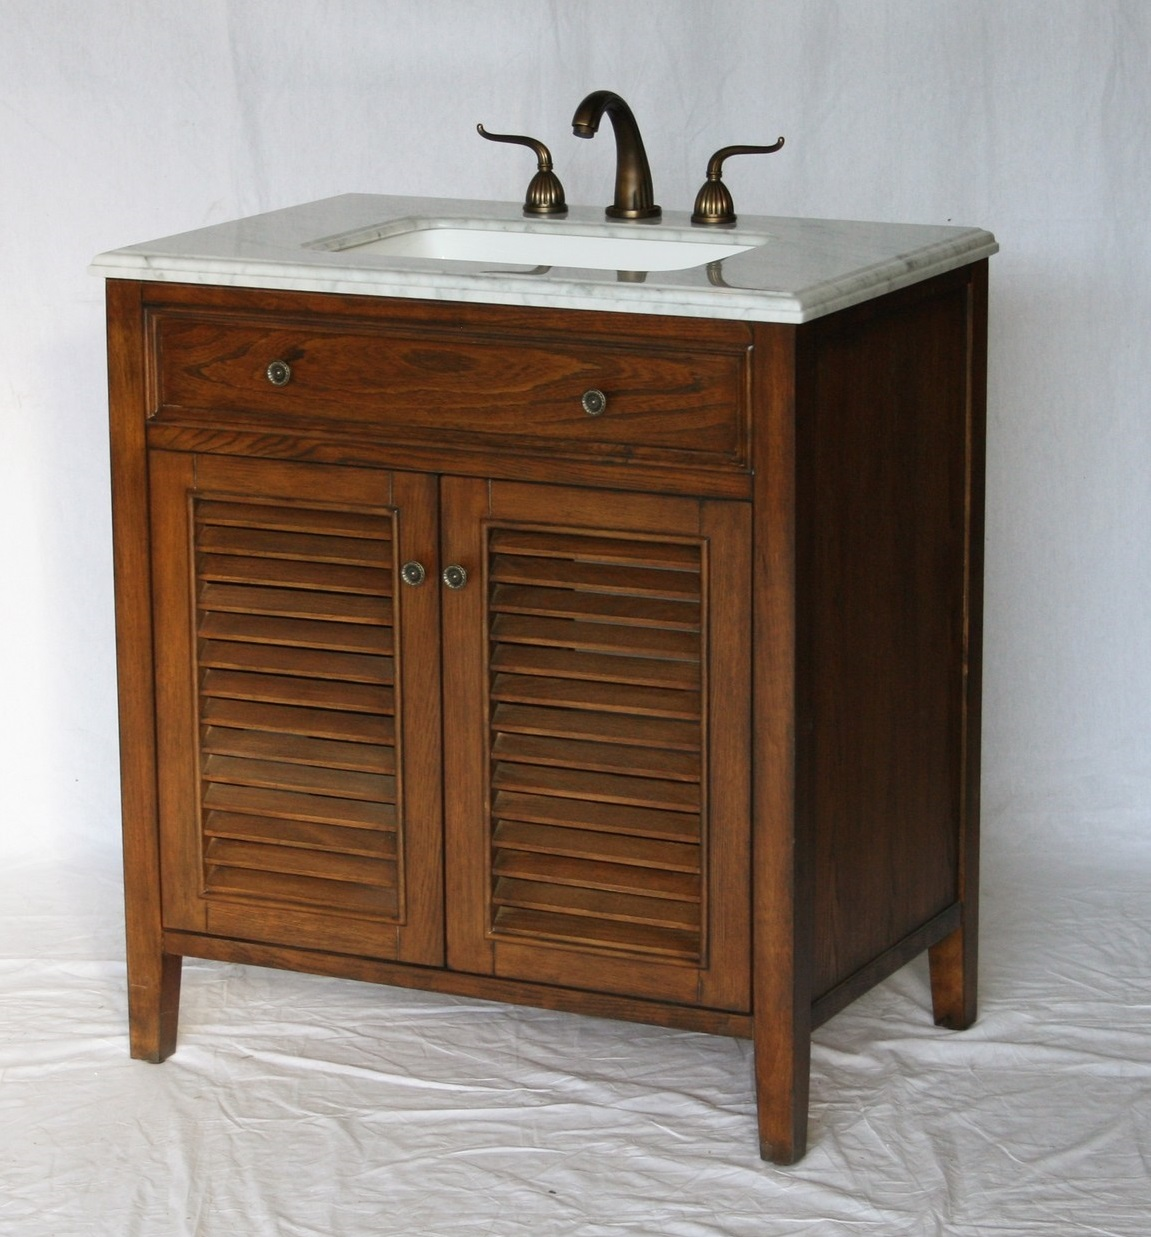 Nautical Style Bathroom Vanities: 32 Inch Bathroom Vanity Coastal Cottage Beach Style Walnut